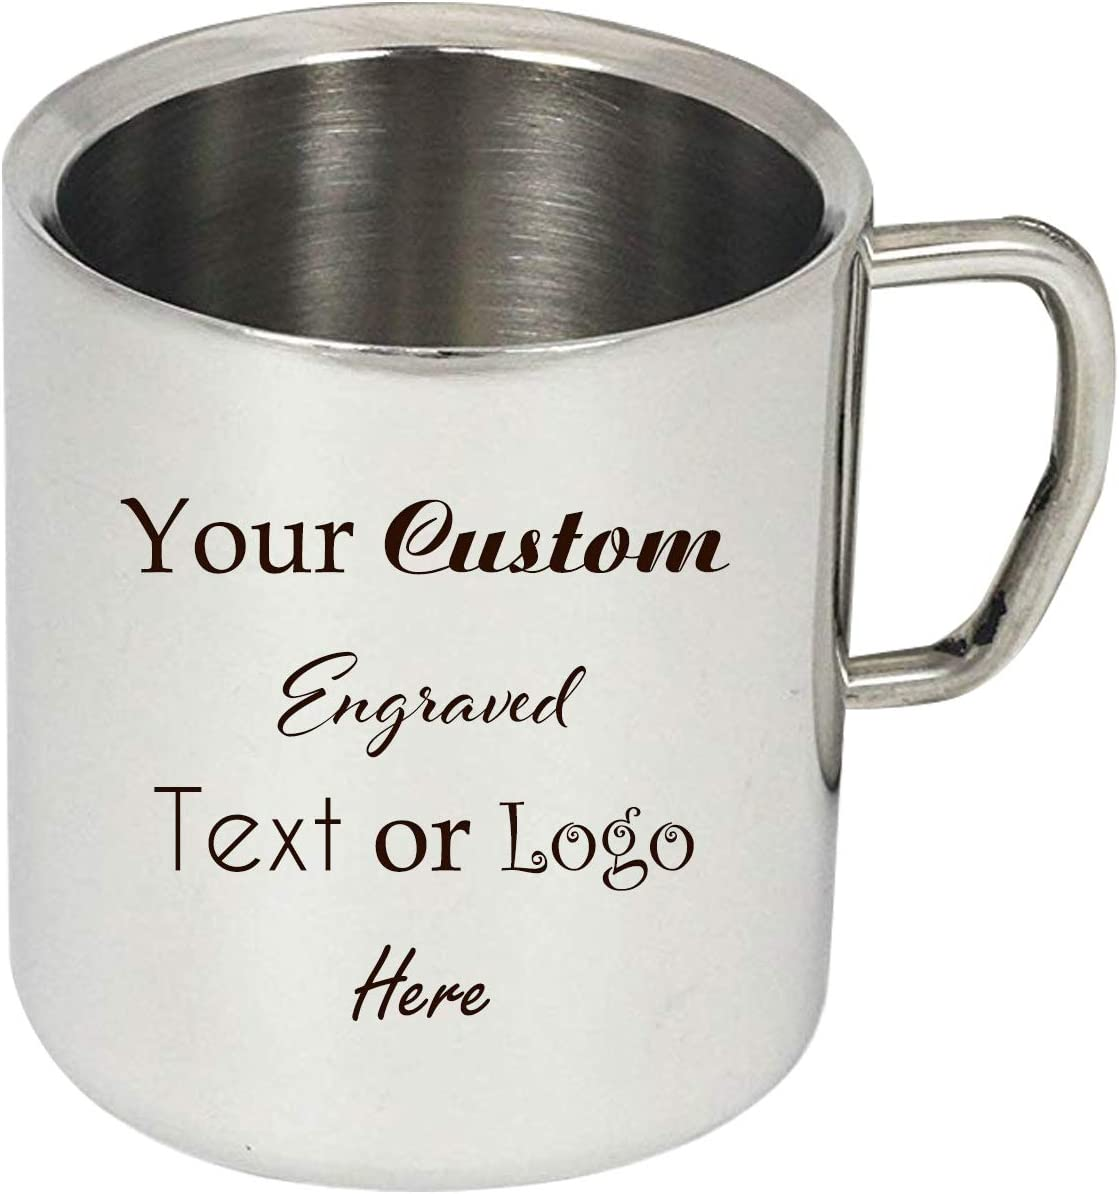 New Personalized Add Your Custom Text or Logo Double Walled Stainless Steel 15 Oz Durable Coffee Mug Customizable Gift (Single Side Engraving)